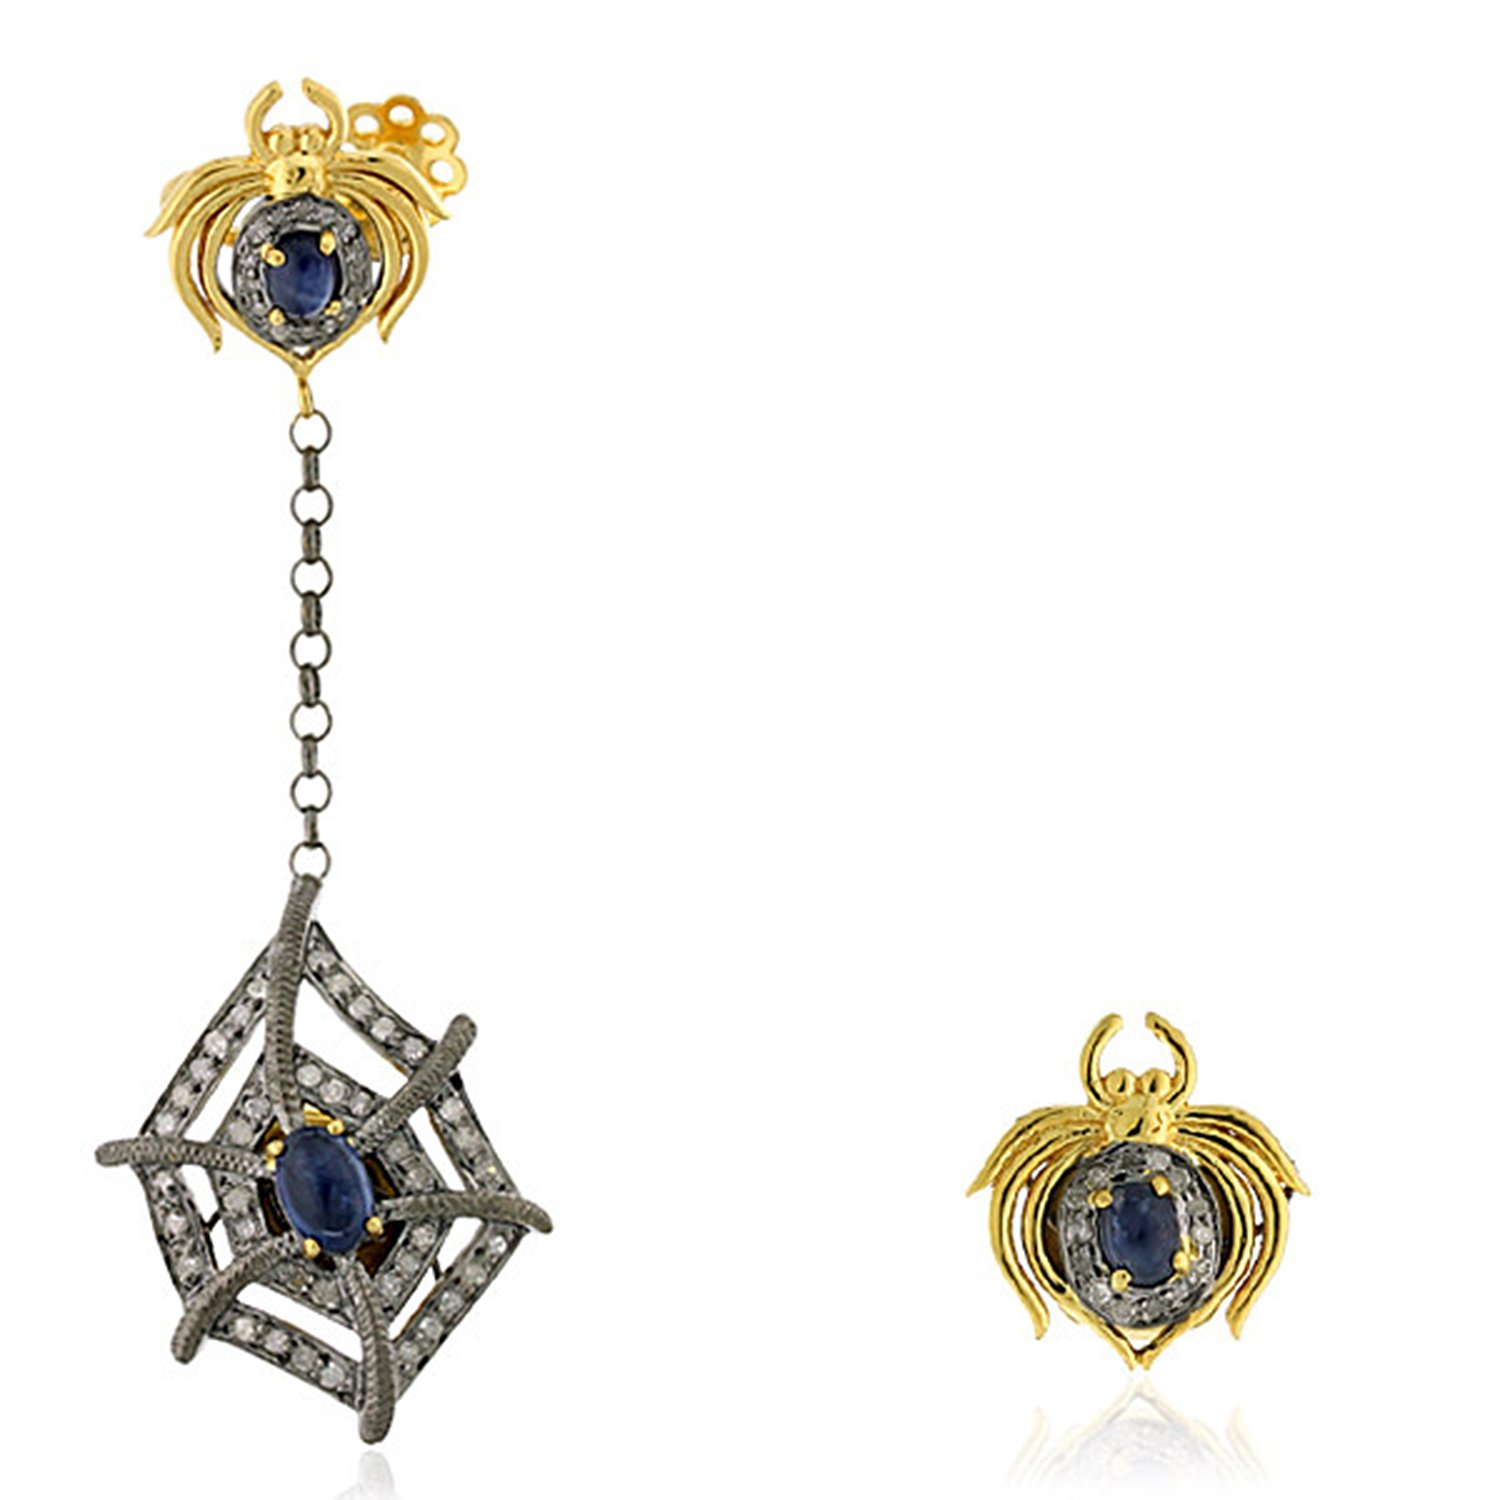 Blue Sapphire & Diamond Spider Style Ear Crawler Cuff Climber Earrings in 18K Yellow Gold & Sterling Silver